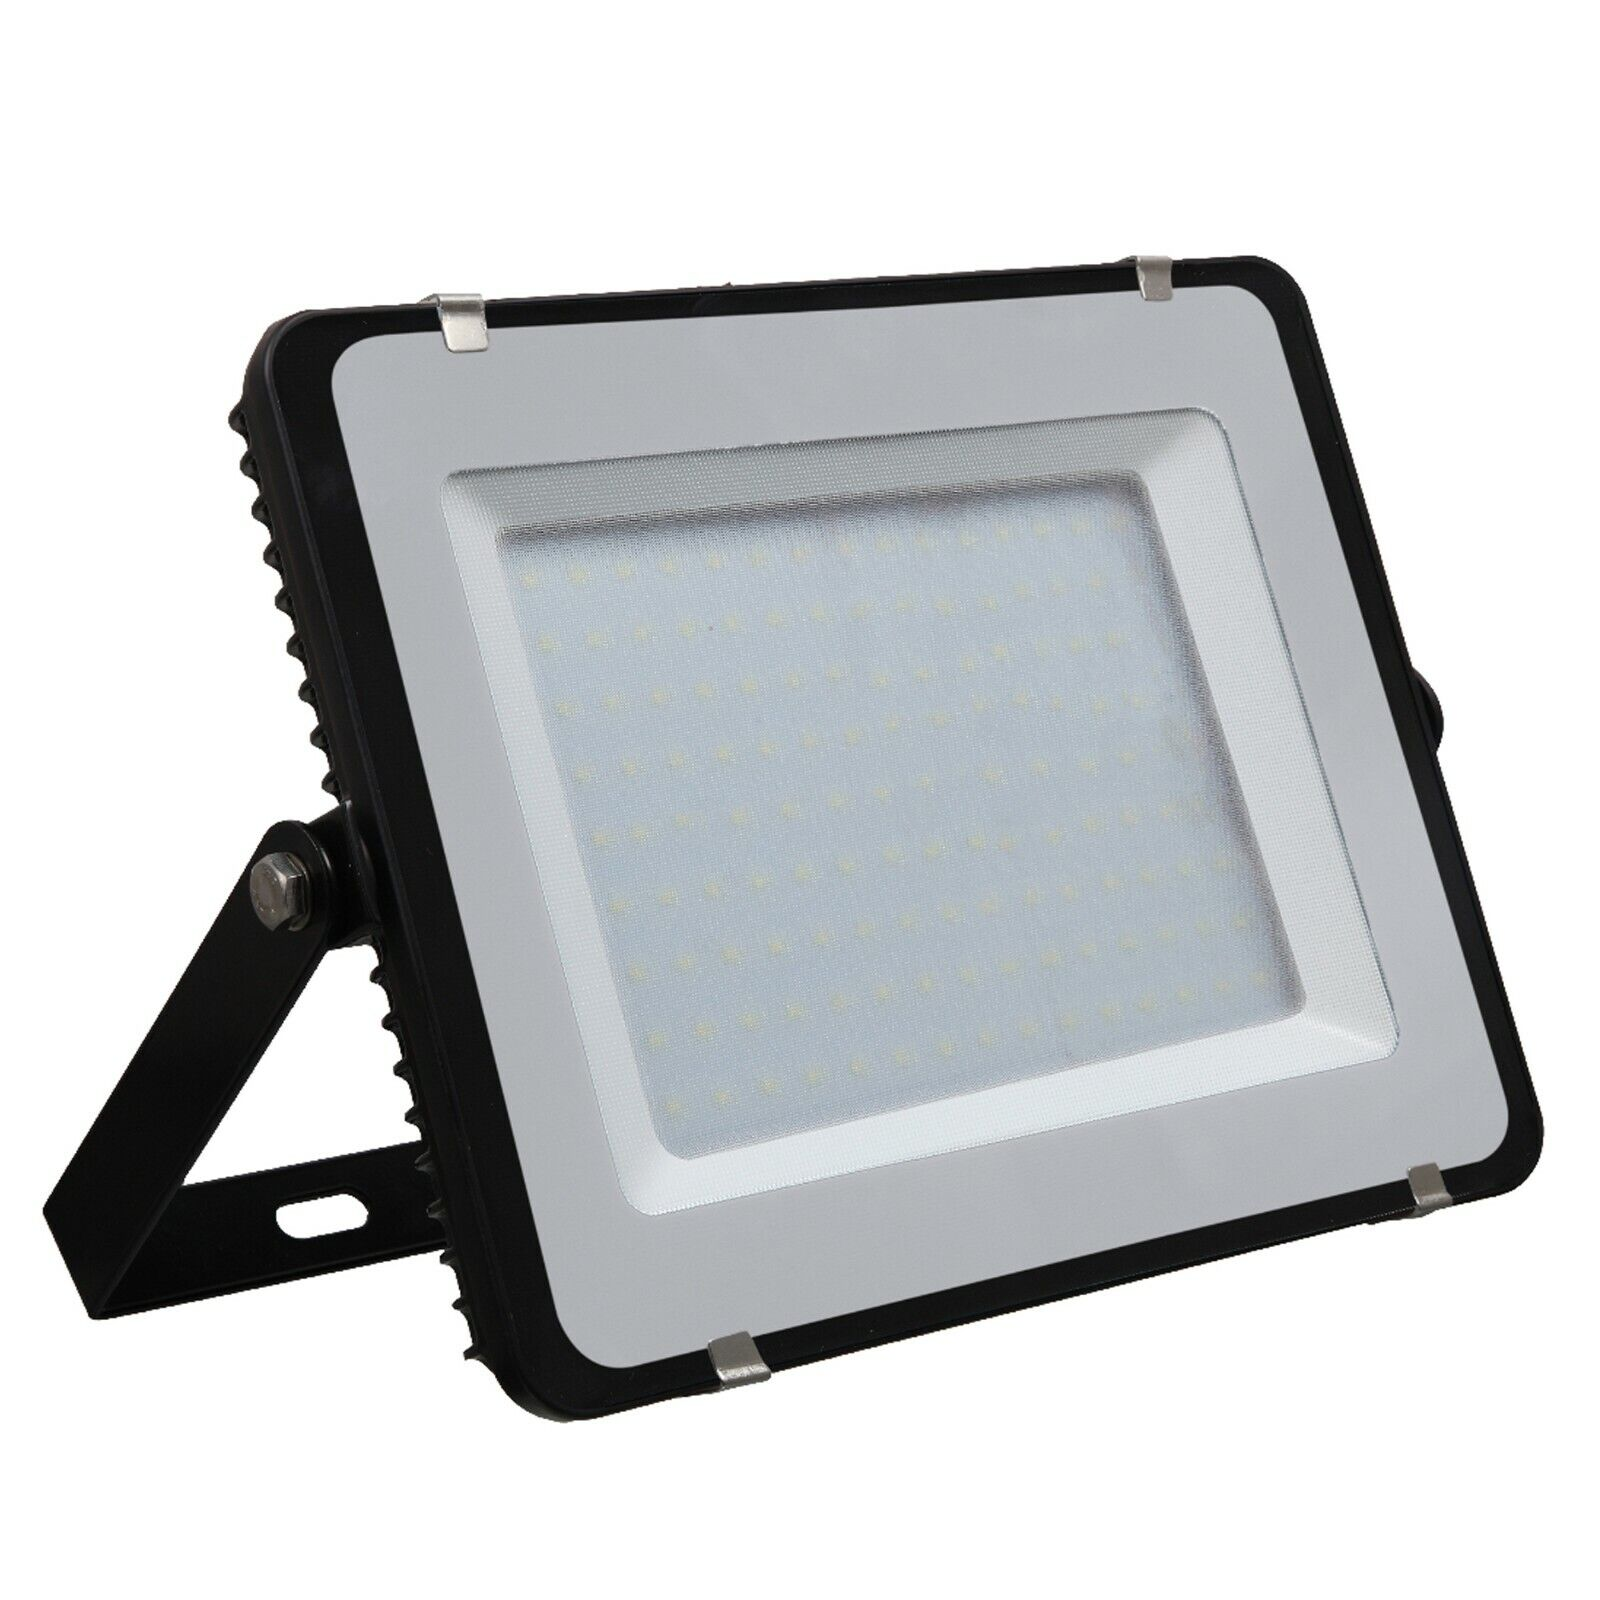 LED Floodlight 150W SMD IP65 Samsung LED Cool Weiß 6400K